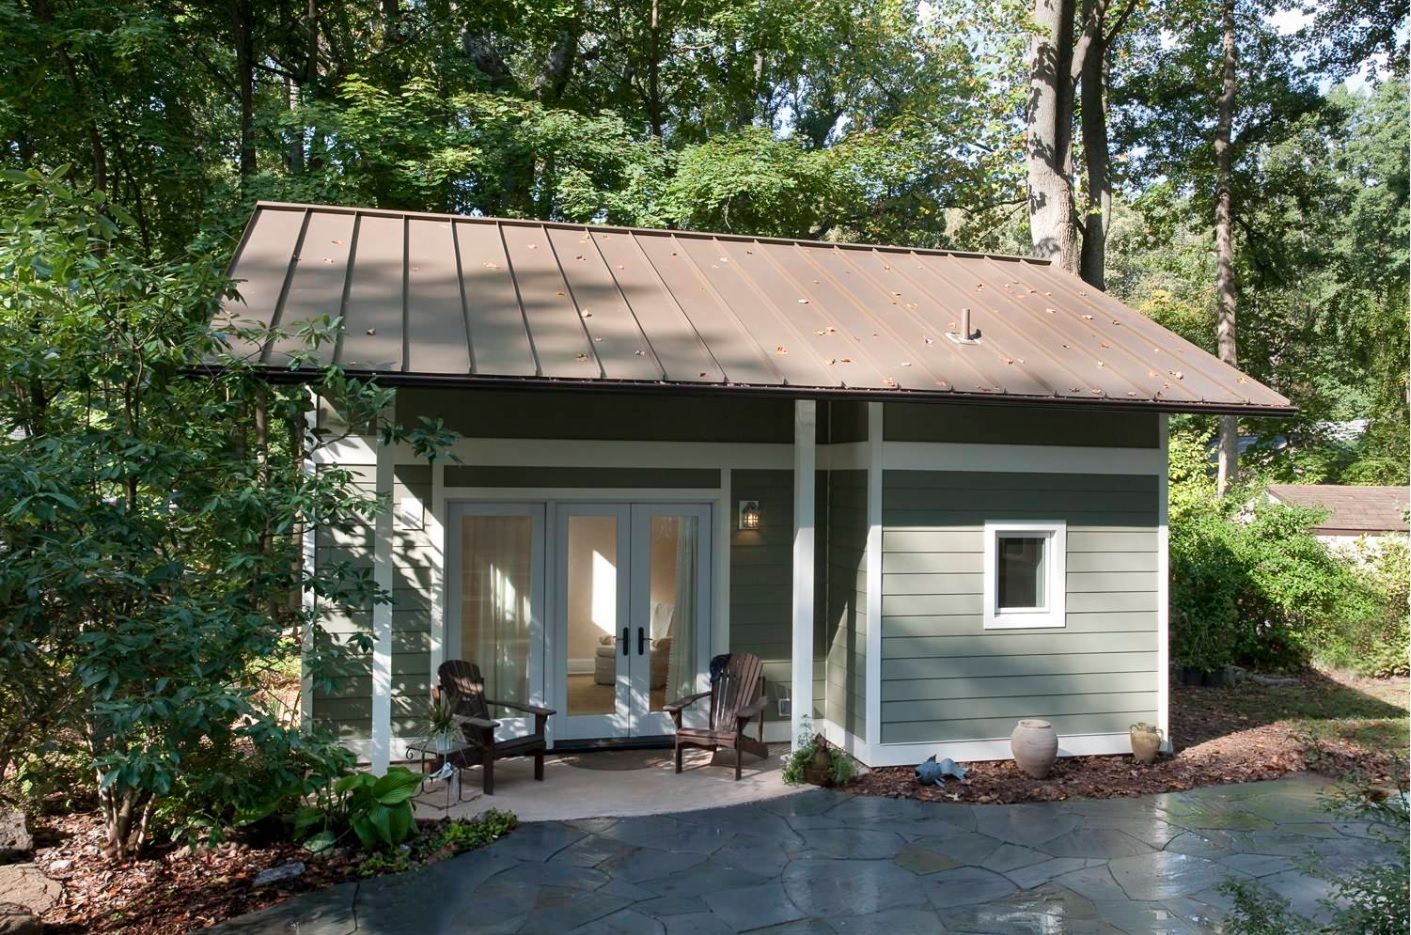 Modern Designs for Tiny Homes. Plastic siding, metal roof and a porch